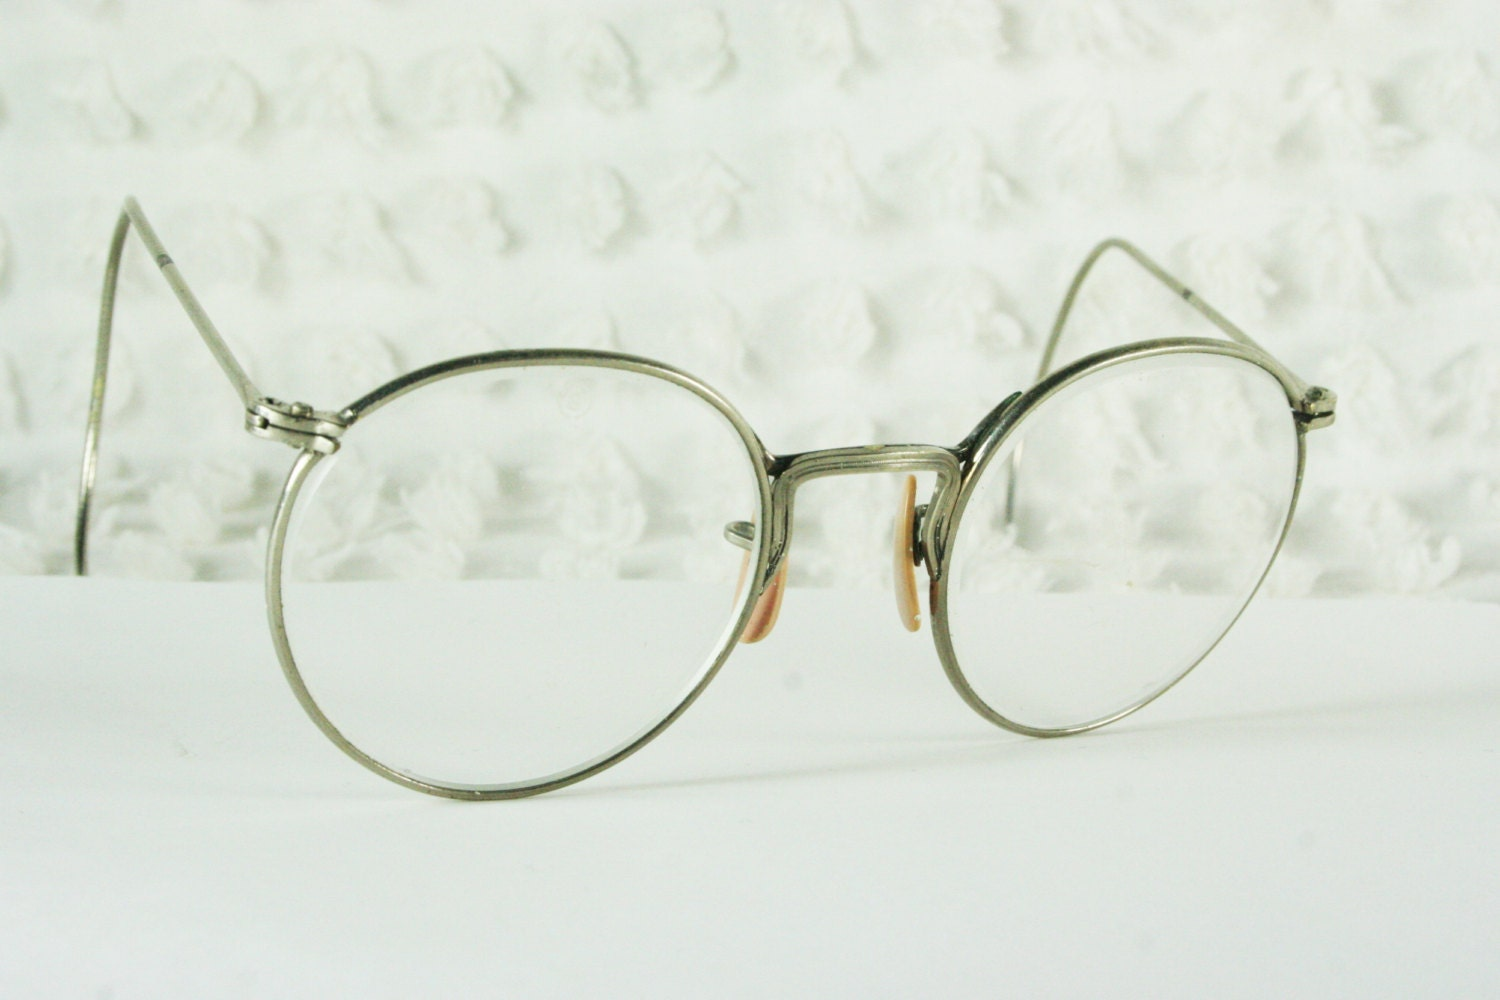 Eyeglass Frames With Long Temples : 70s Round Glasses 1960s Safety Frame Mens Silver by ...